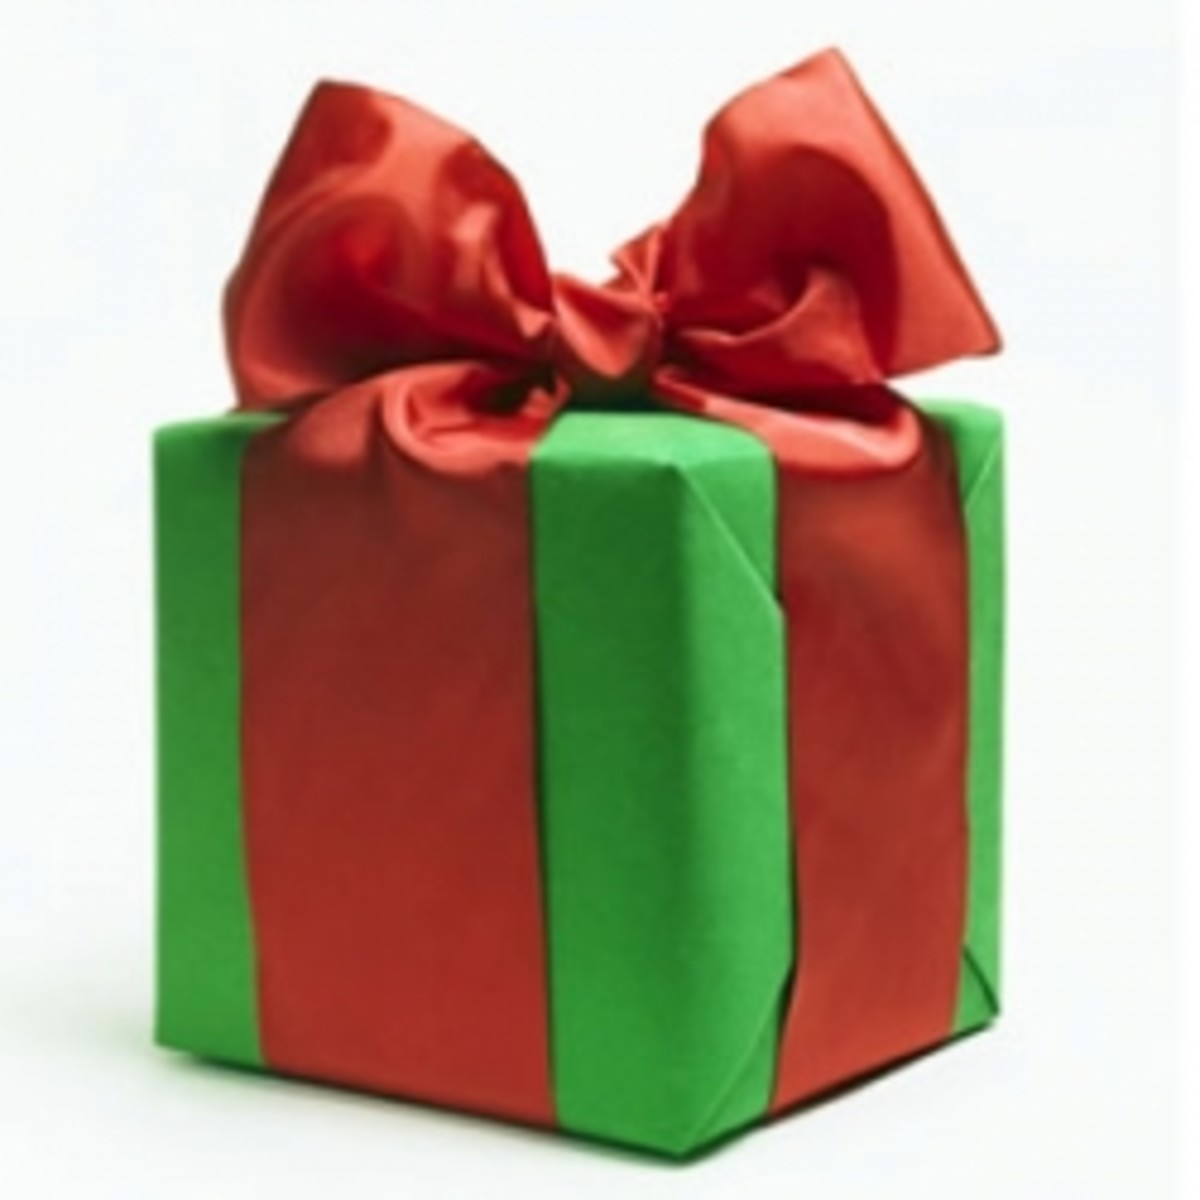 Gift wrapping ideas and techniques hubpages gift wrapping ideas and techniques negle Image collections